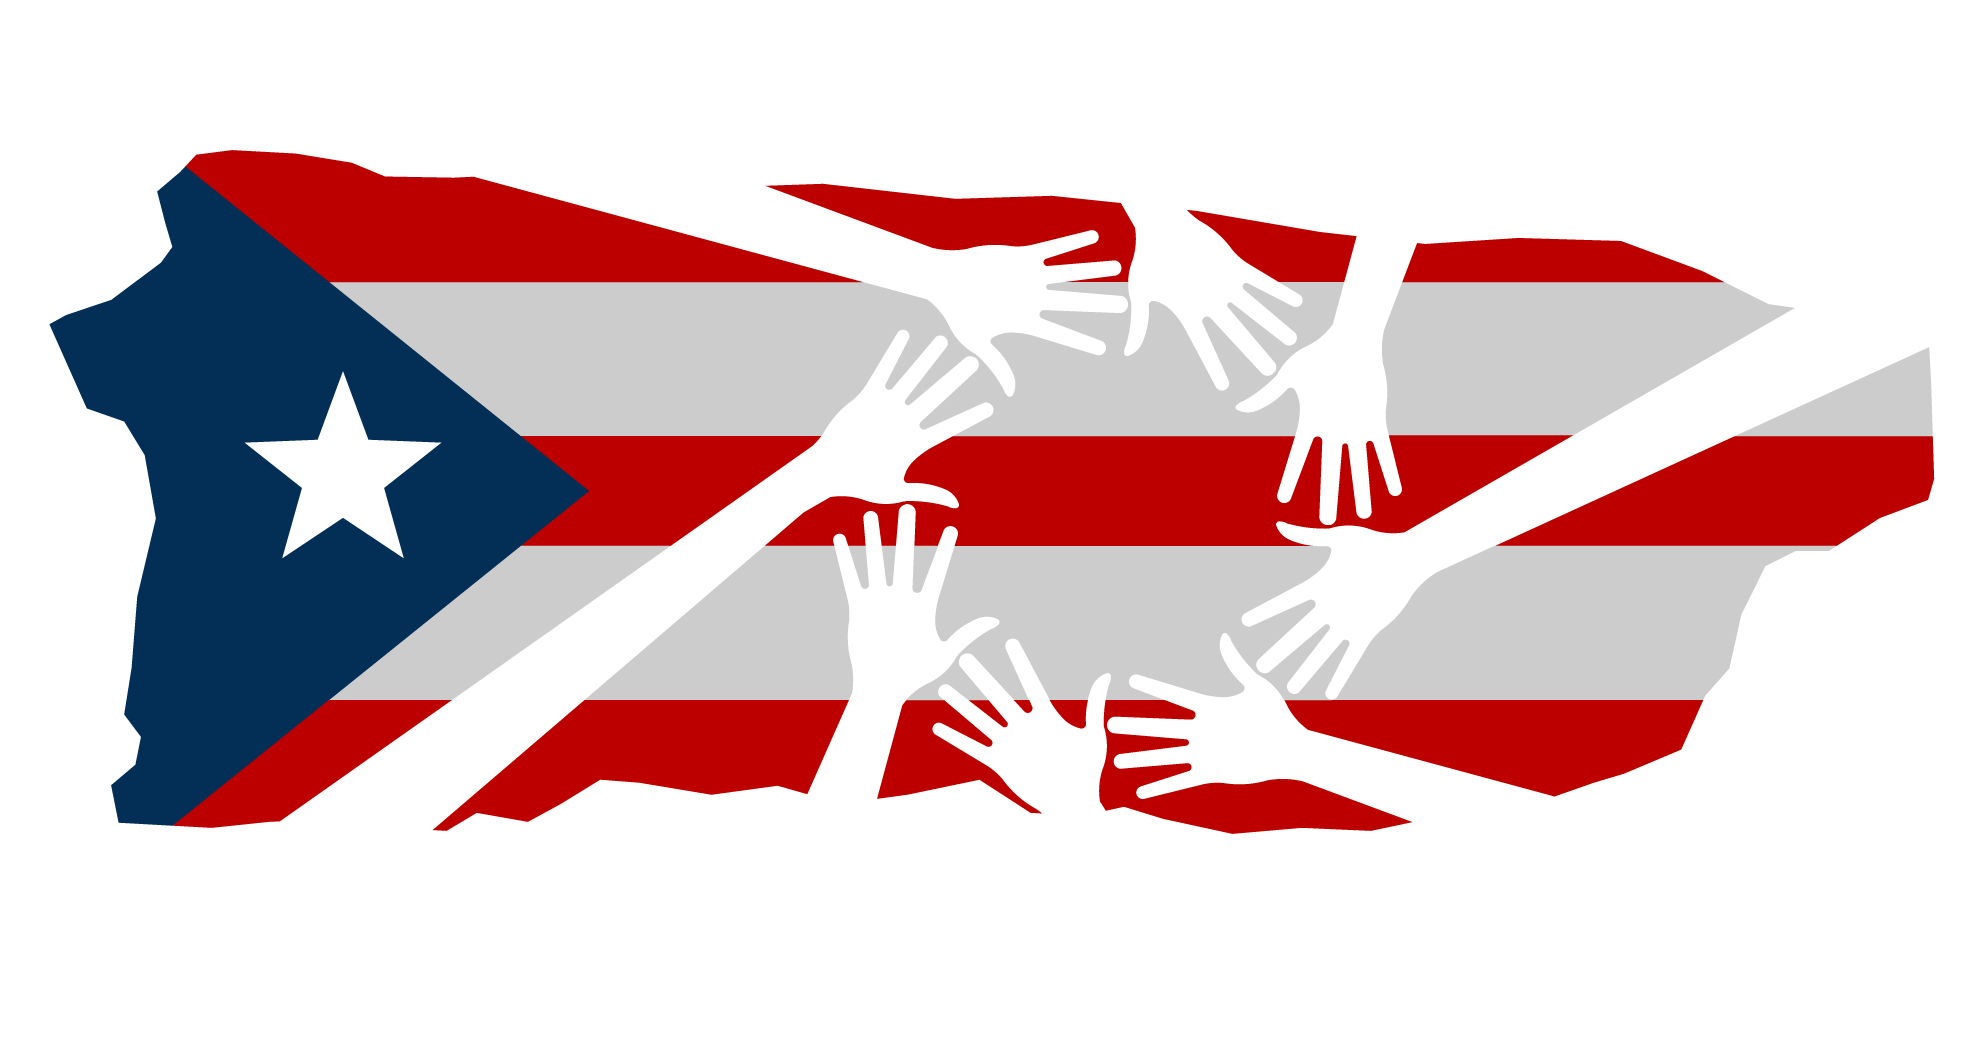 Relief for puerto rico. Medical clipart gauze